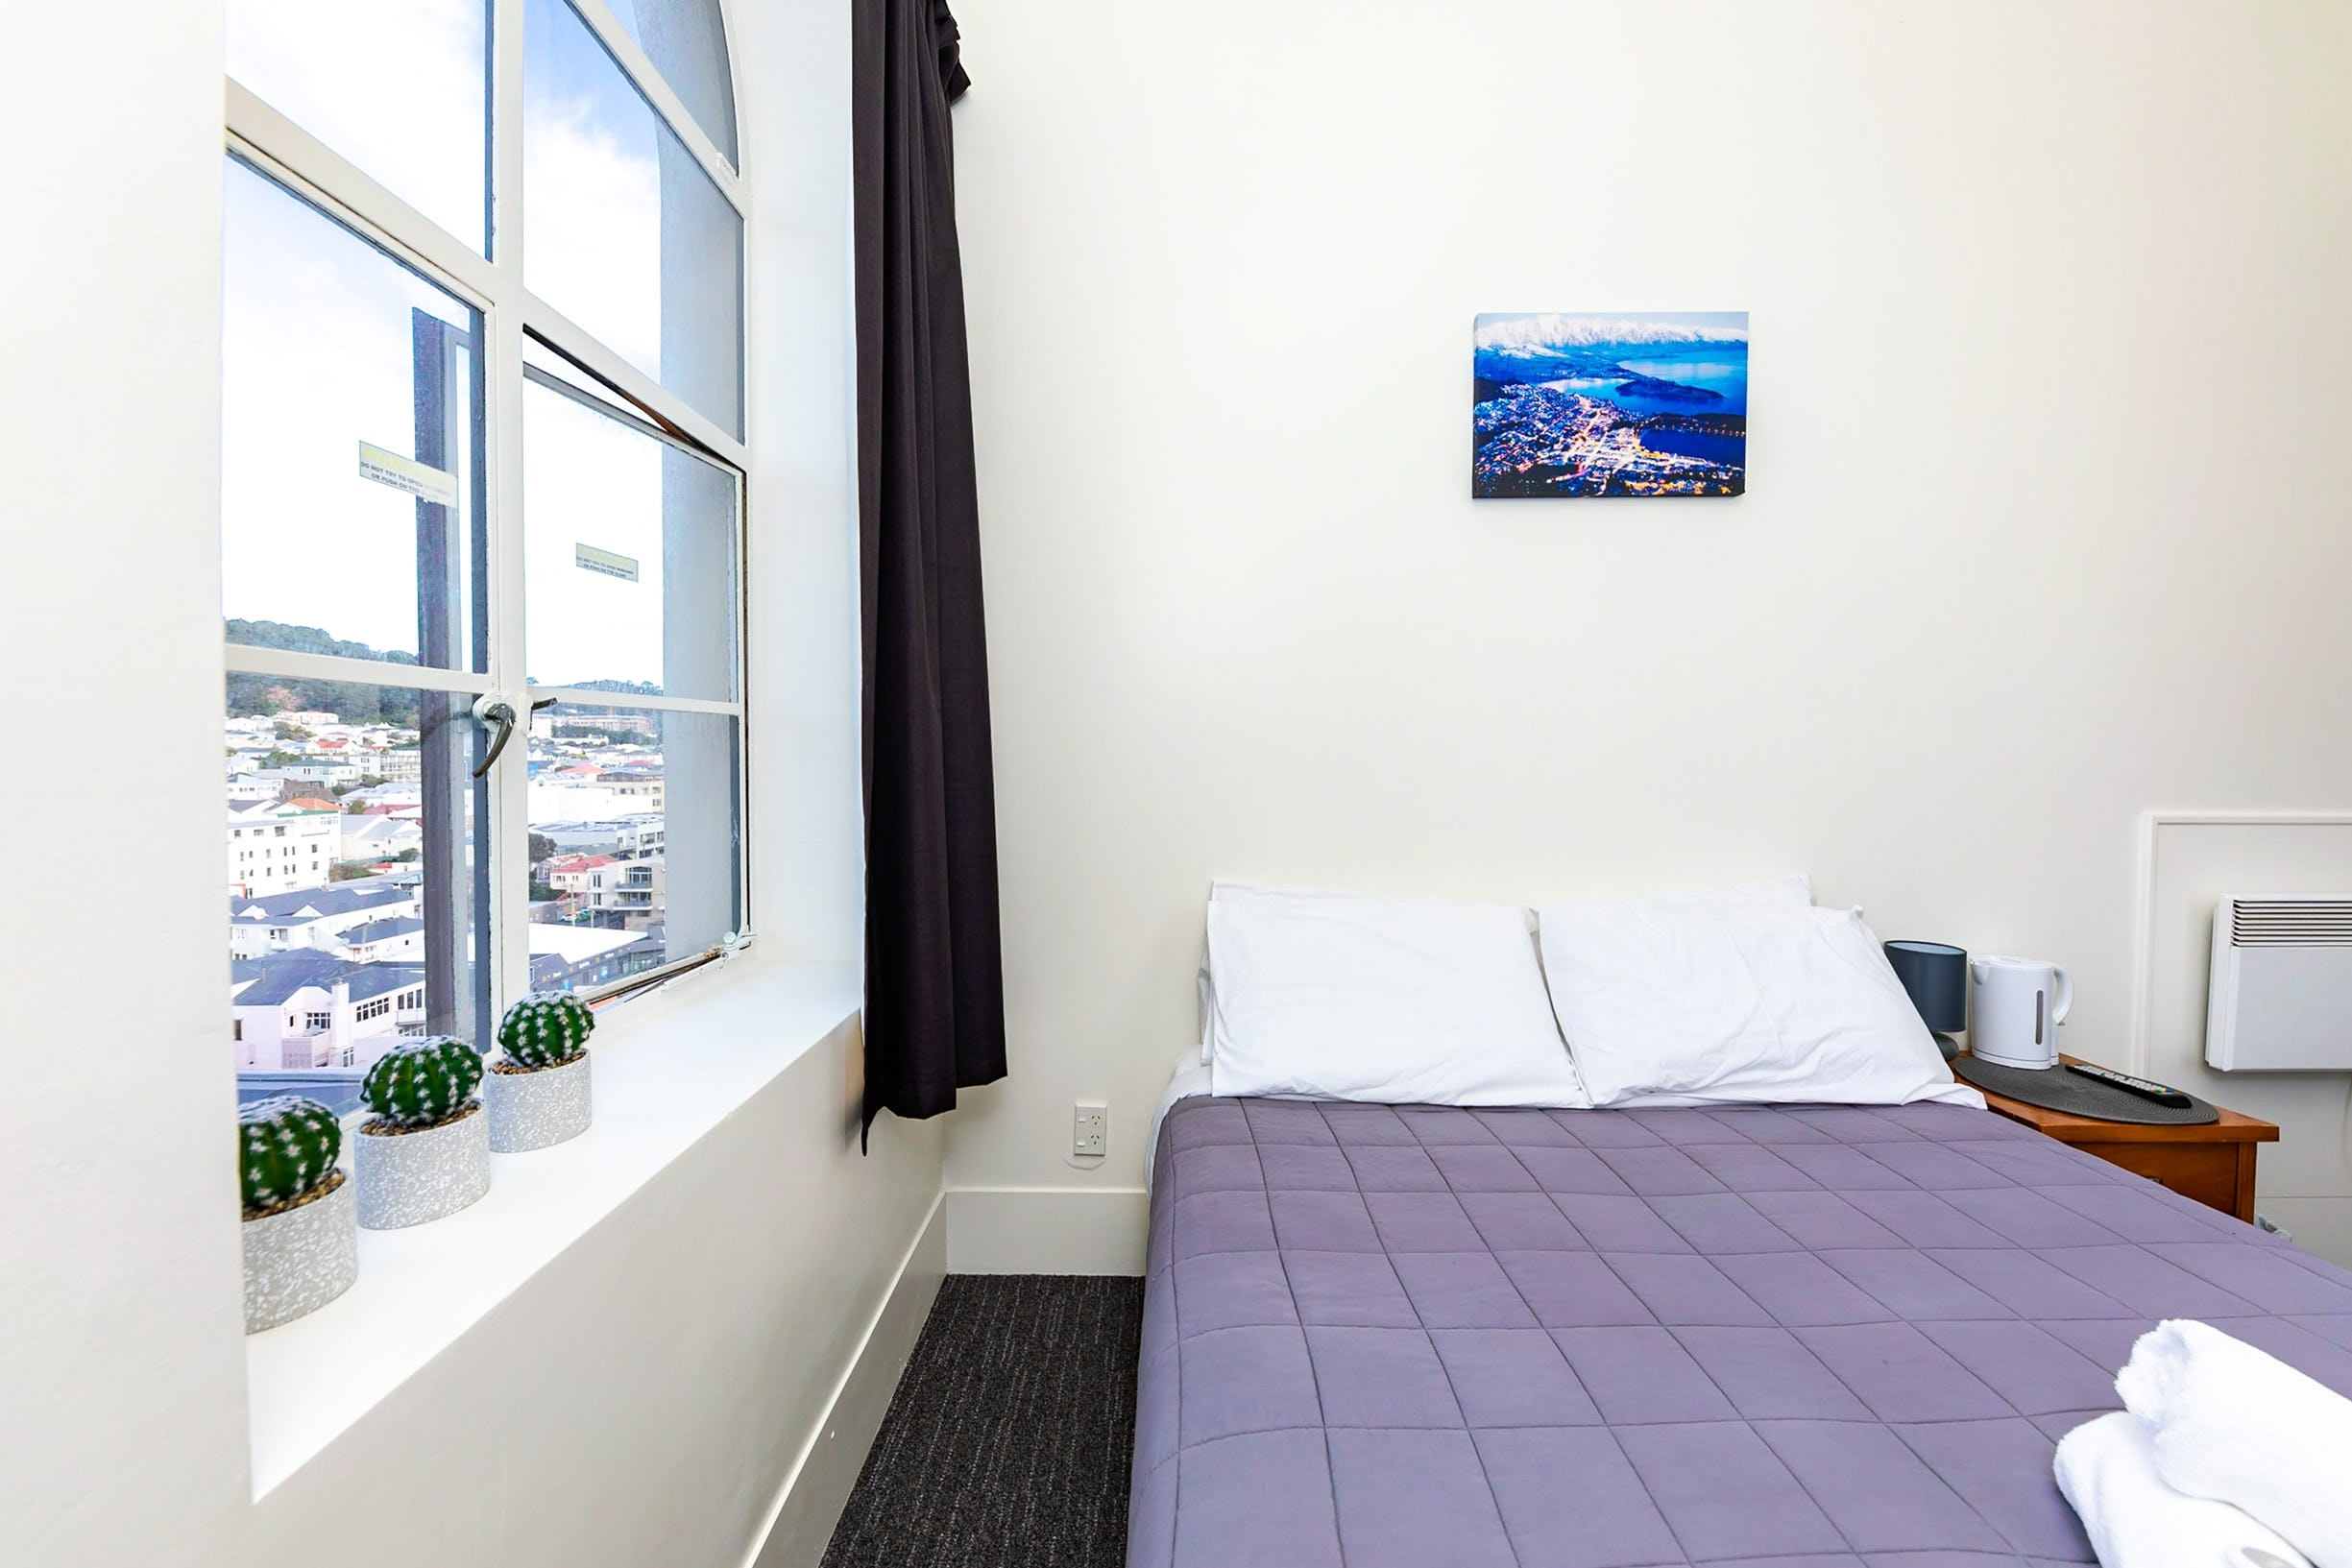 wellington hostel accommodation